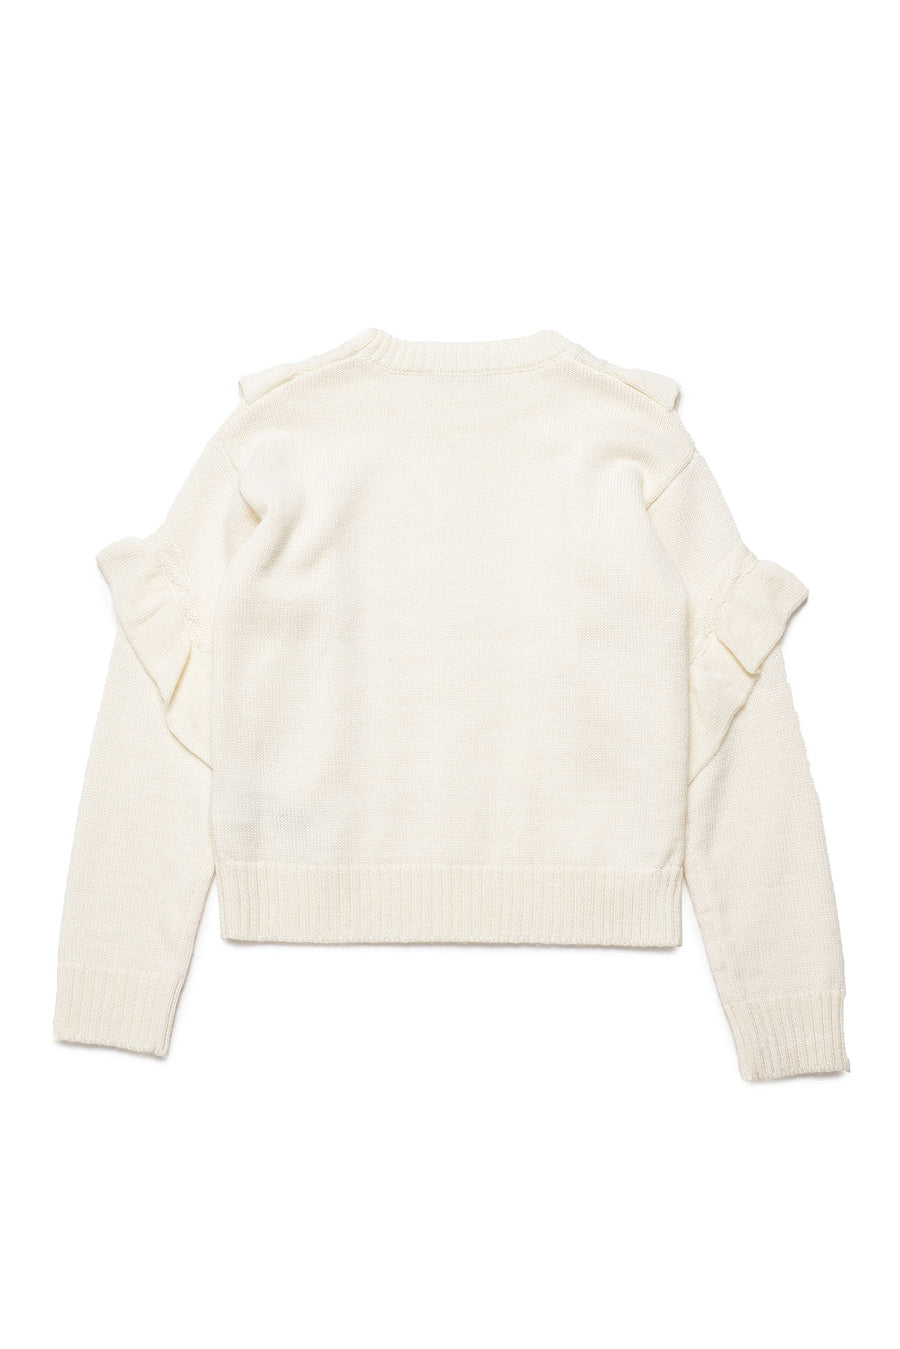 Cable Knit Flutter SLeeve Sweater by Trussardi